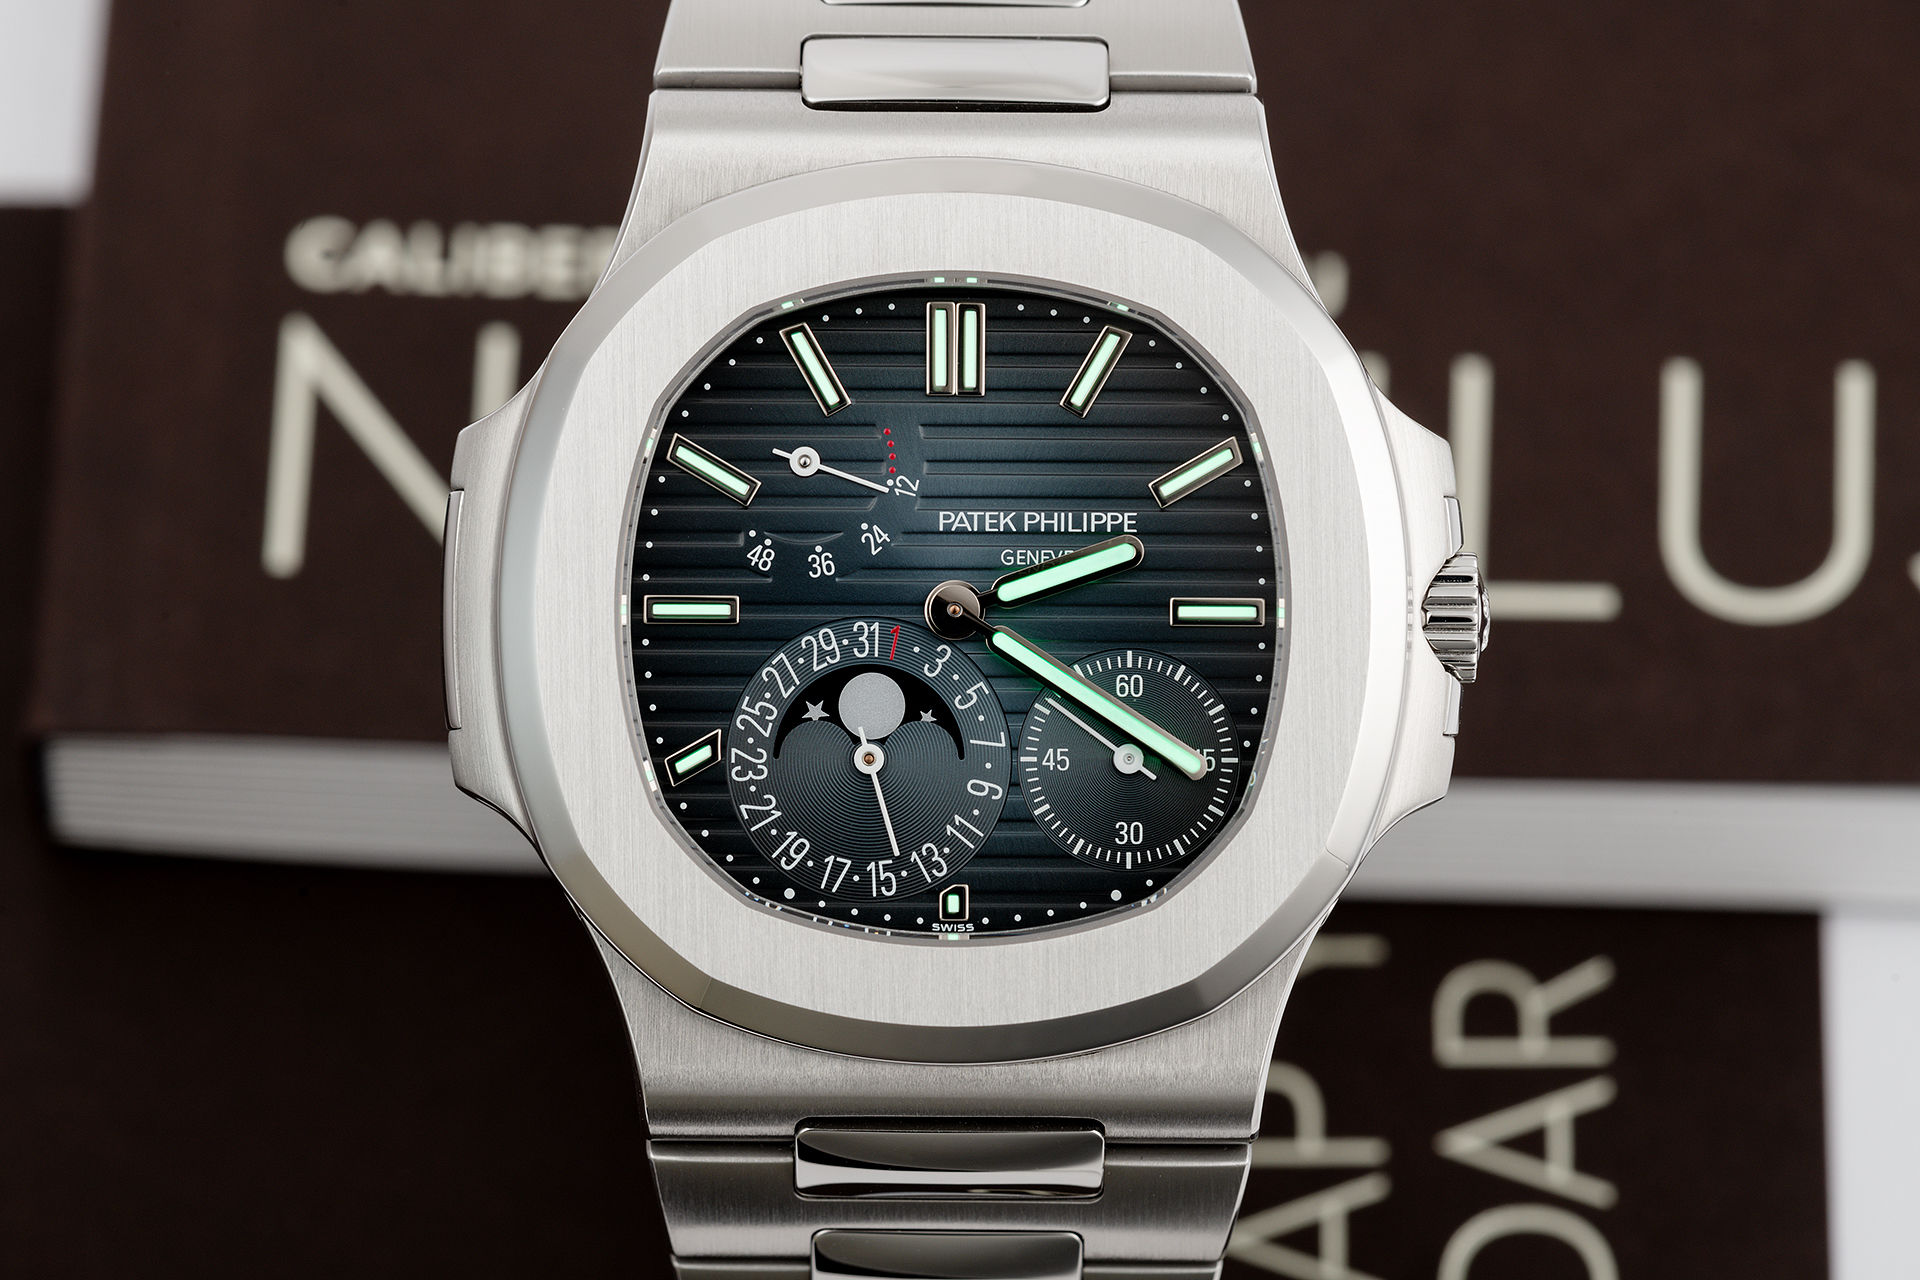 ref 5712/1A-001 | Power Reserve 'Full Set' | Patek Philippe Nautilus